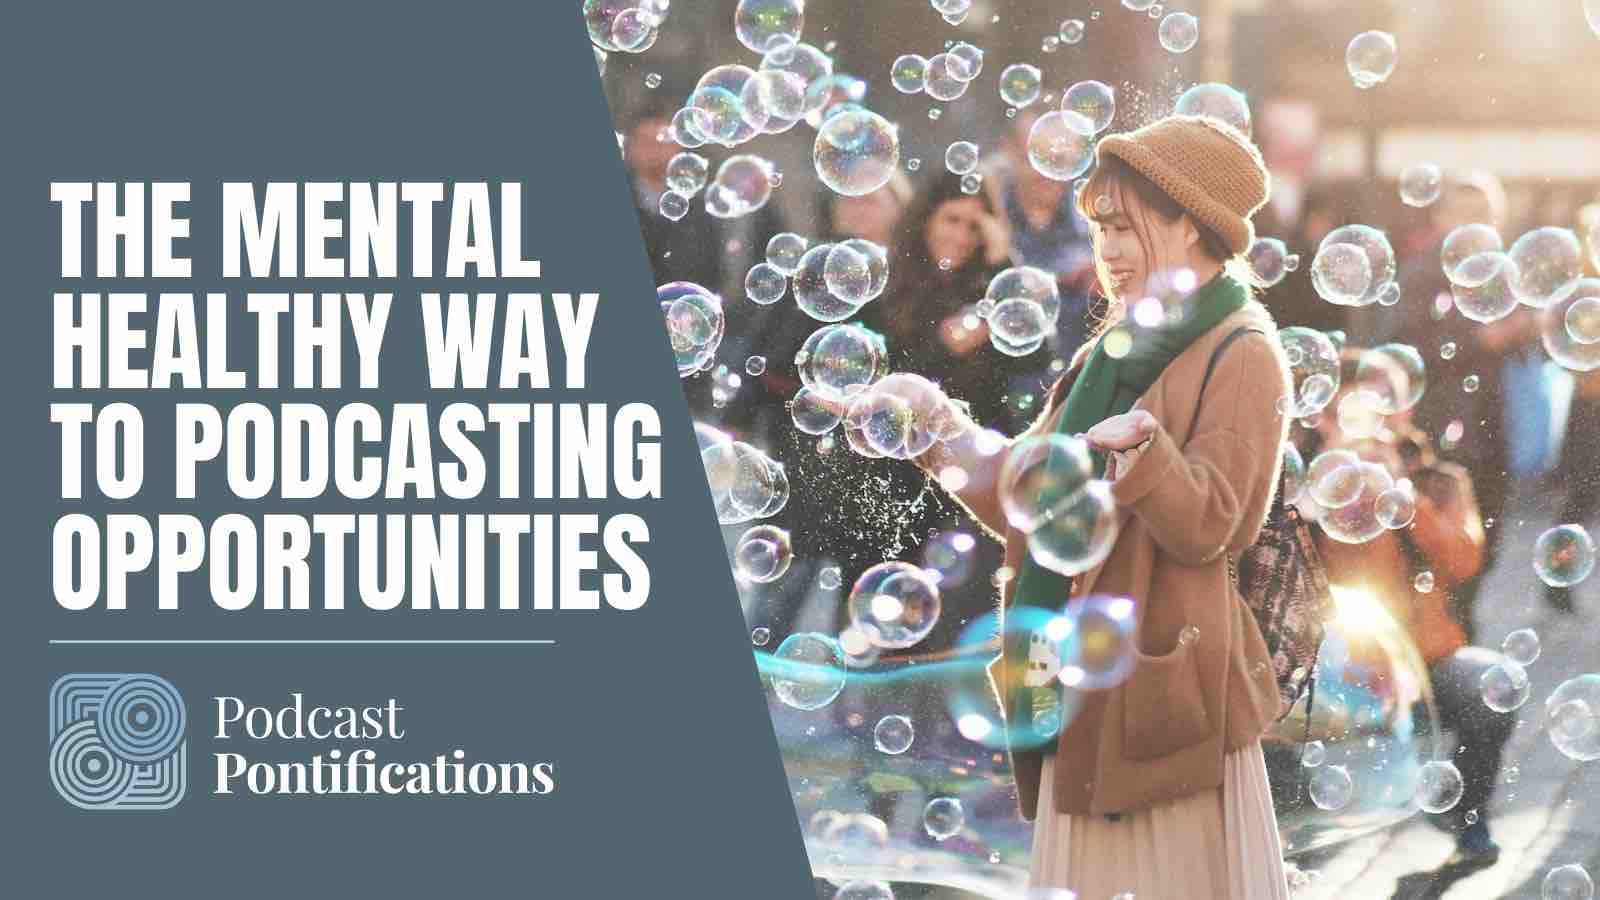 The Mental Healthy Way To Podcasting Opportunities